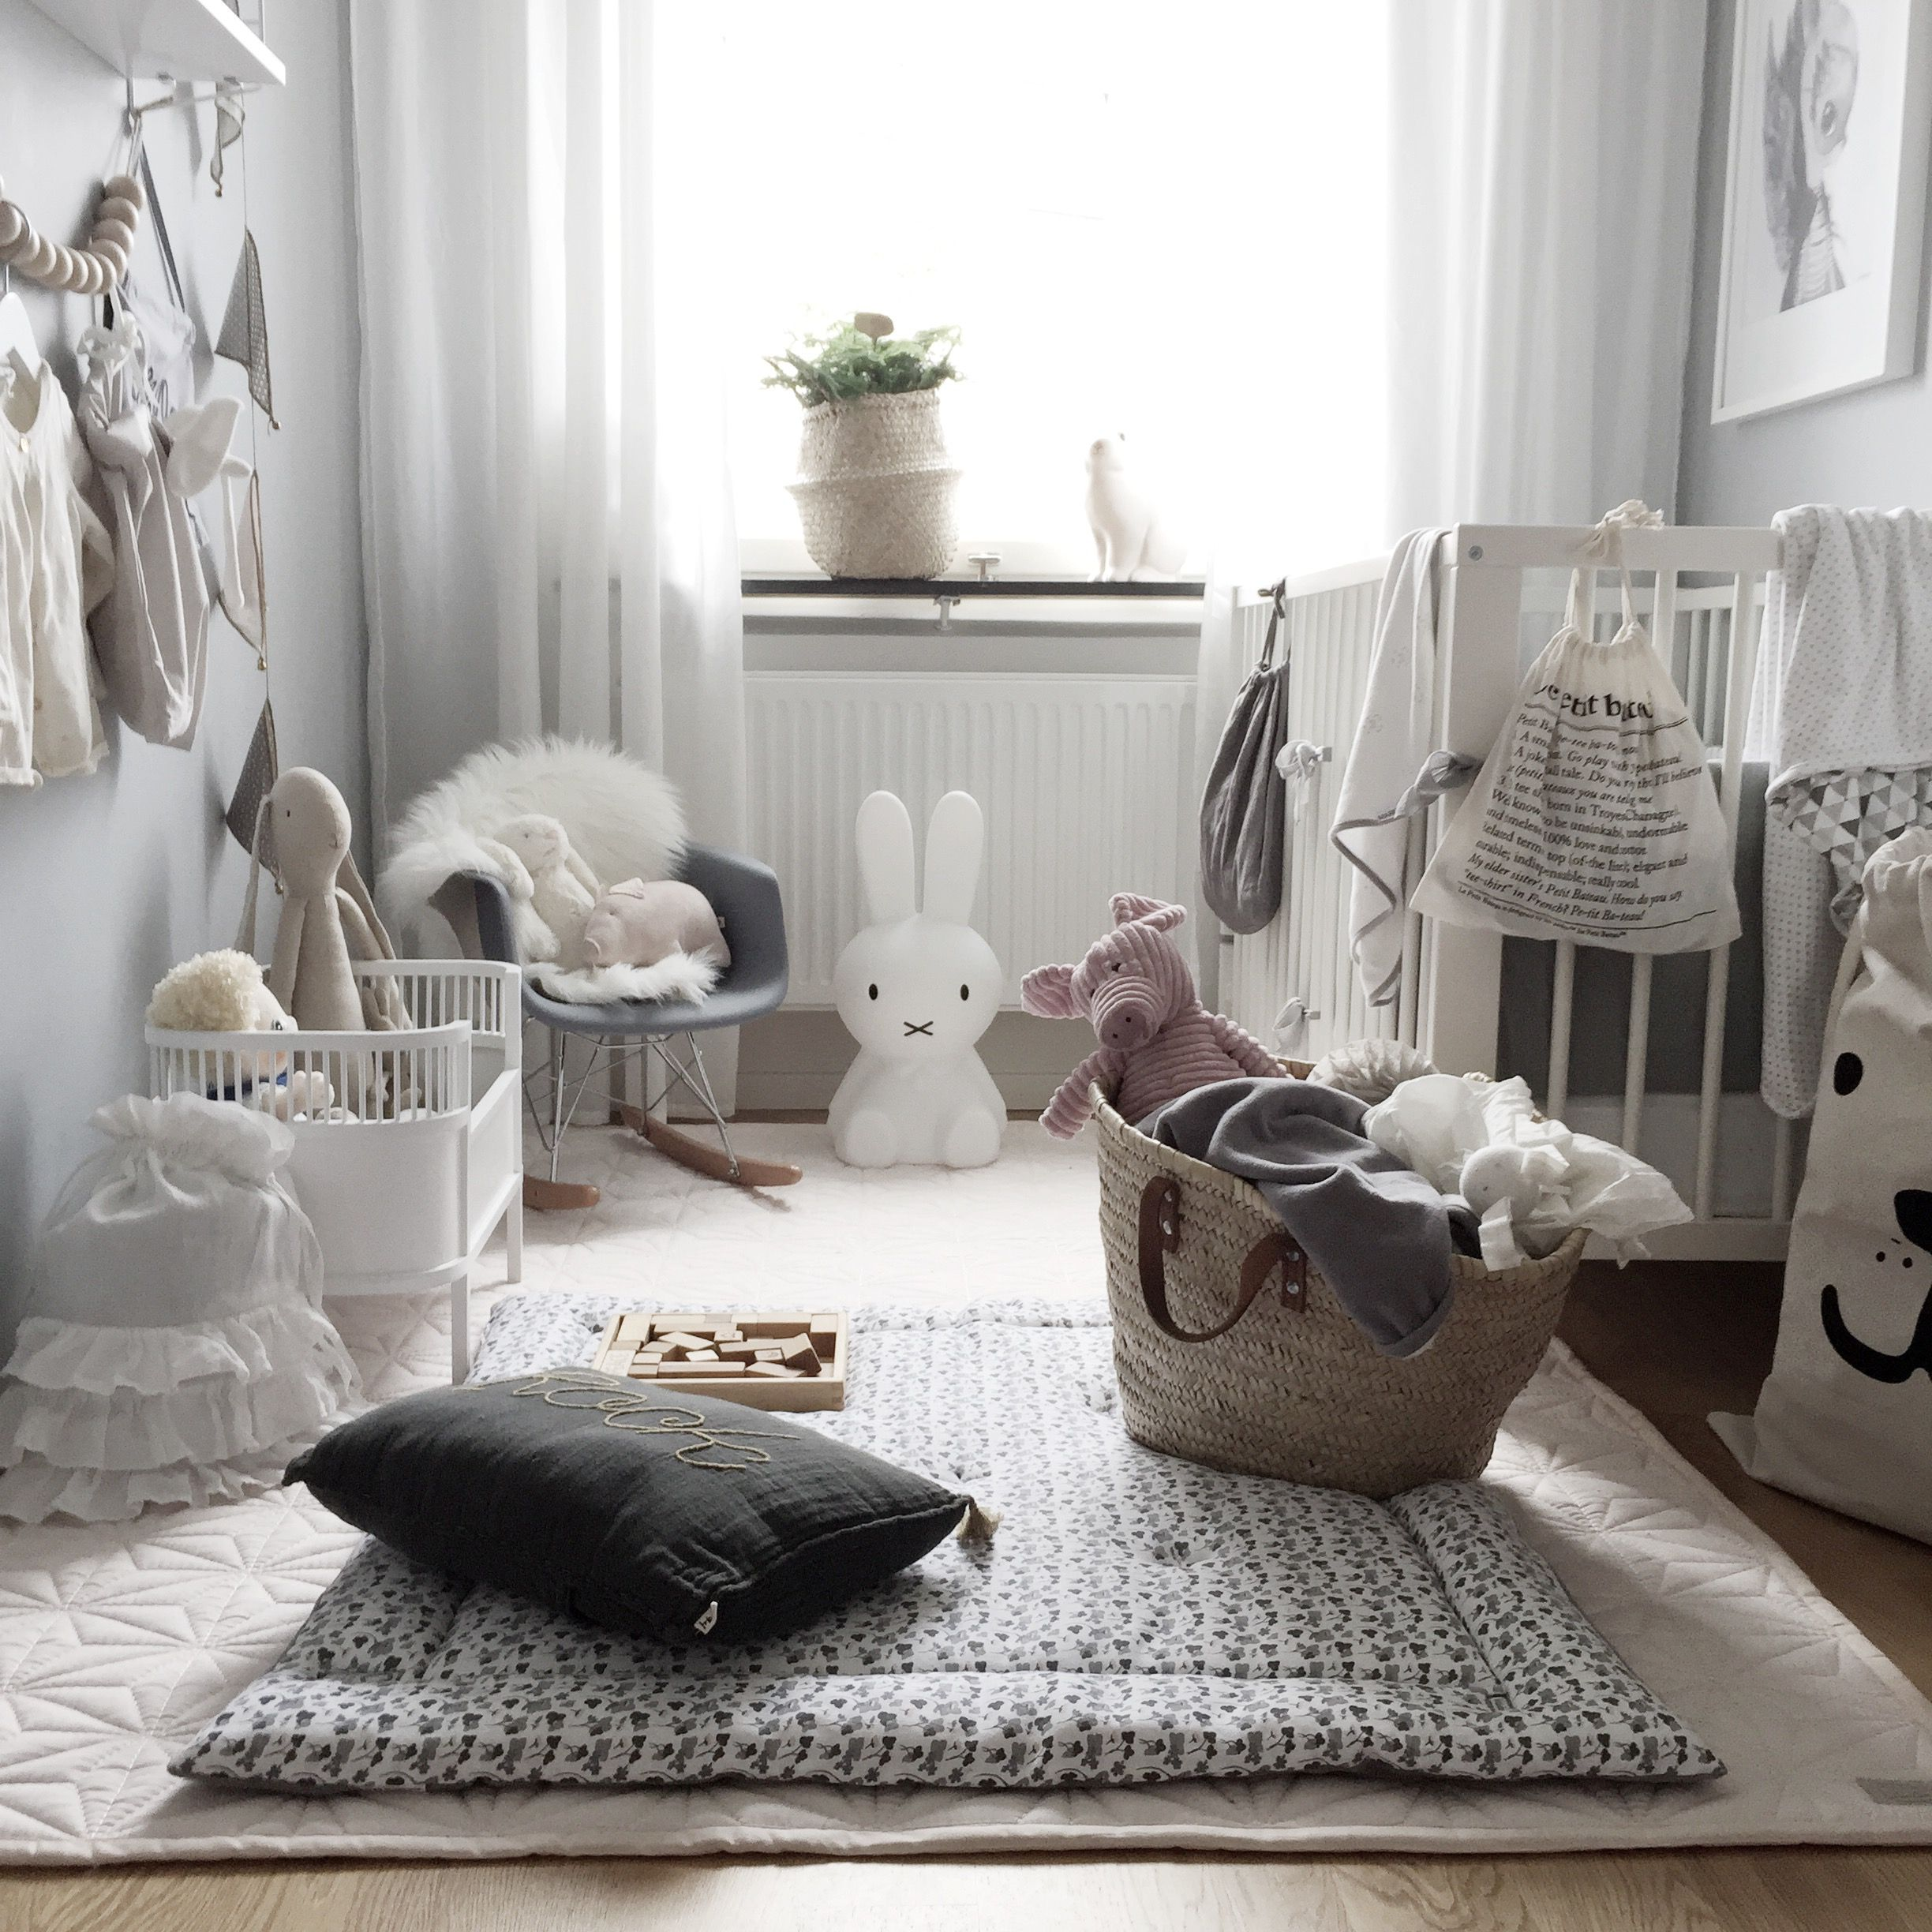 barnrum gr bas kinderzimmer pinterest kinderzimmer kleinkind zimmer und zimmergestaltung. Black Bedroom Furniture Sets. Home Design Ideas